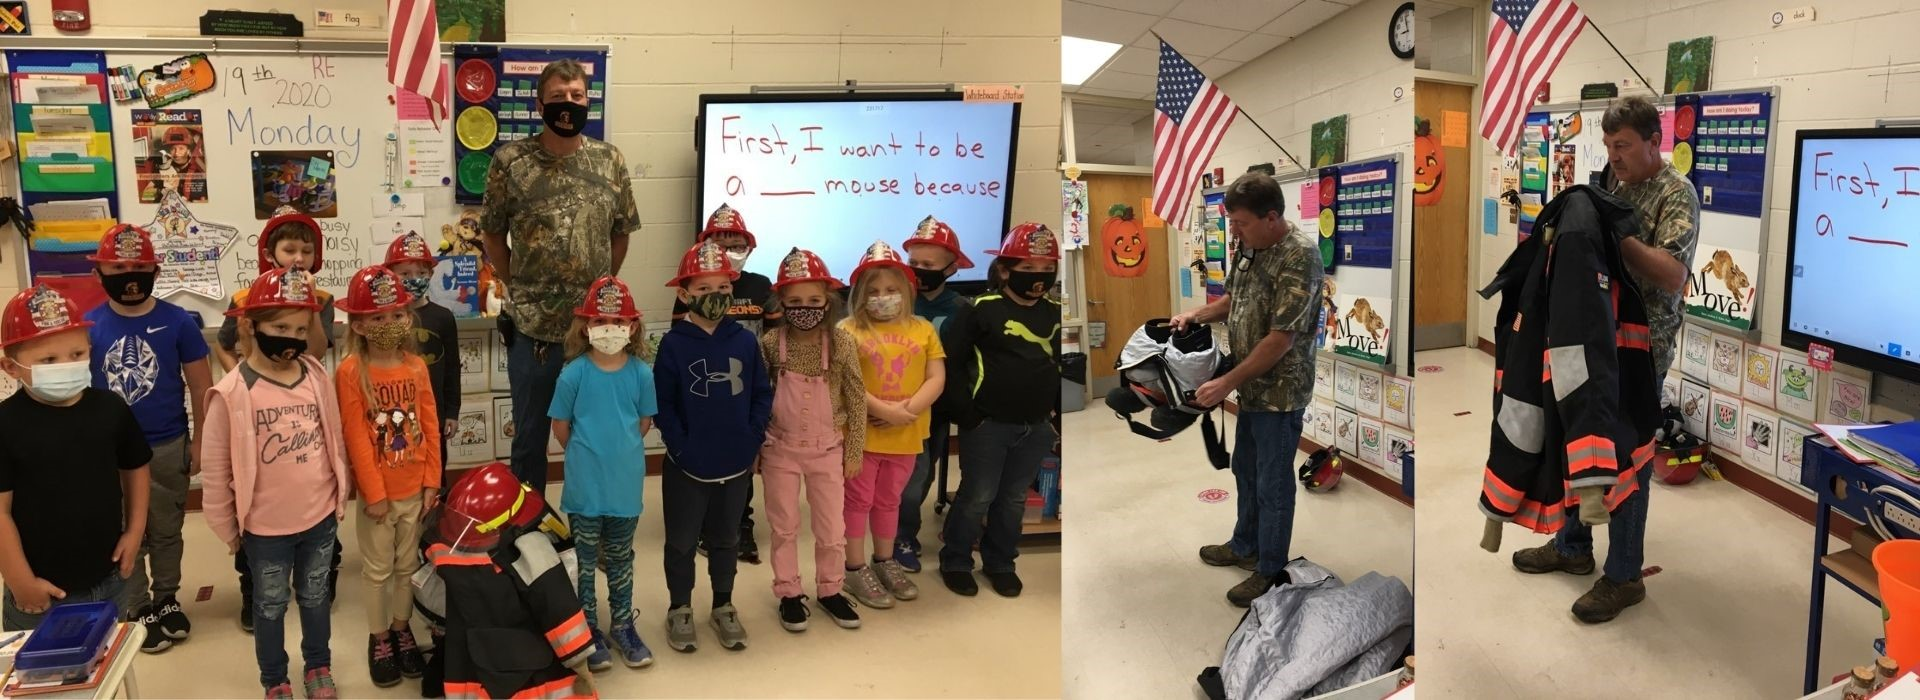 fire safety in 1st